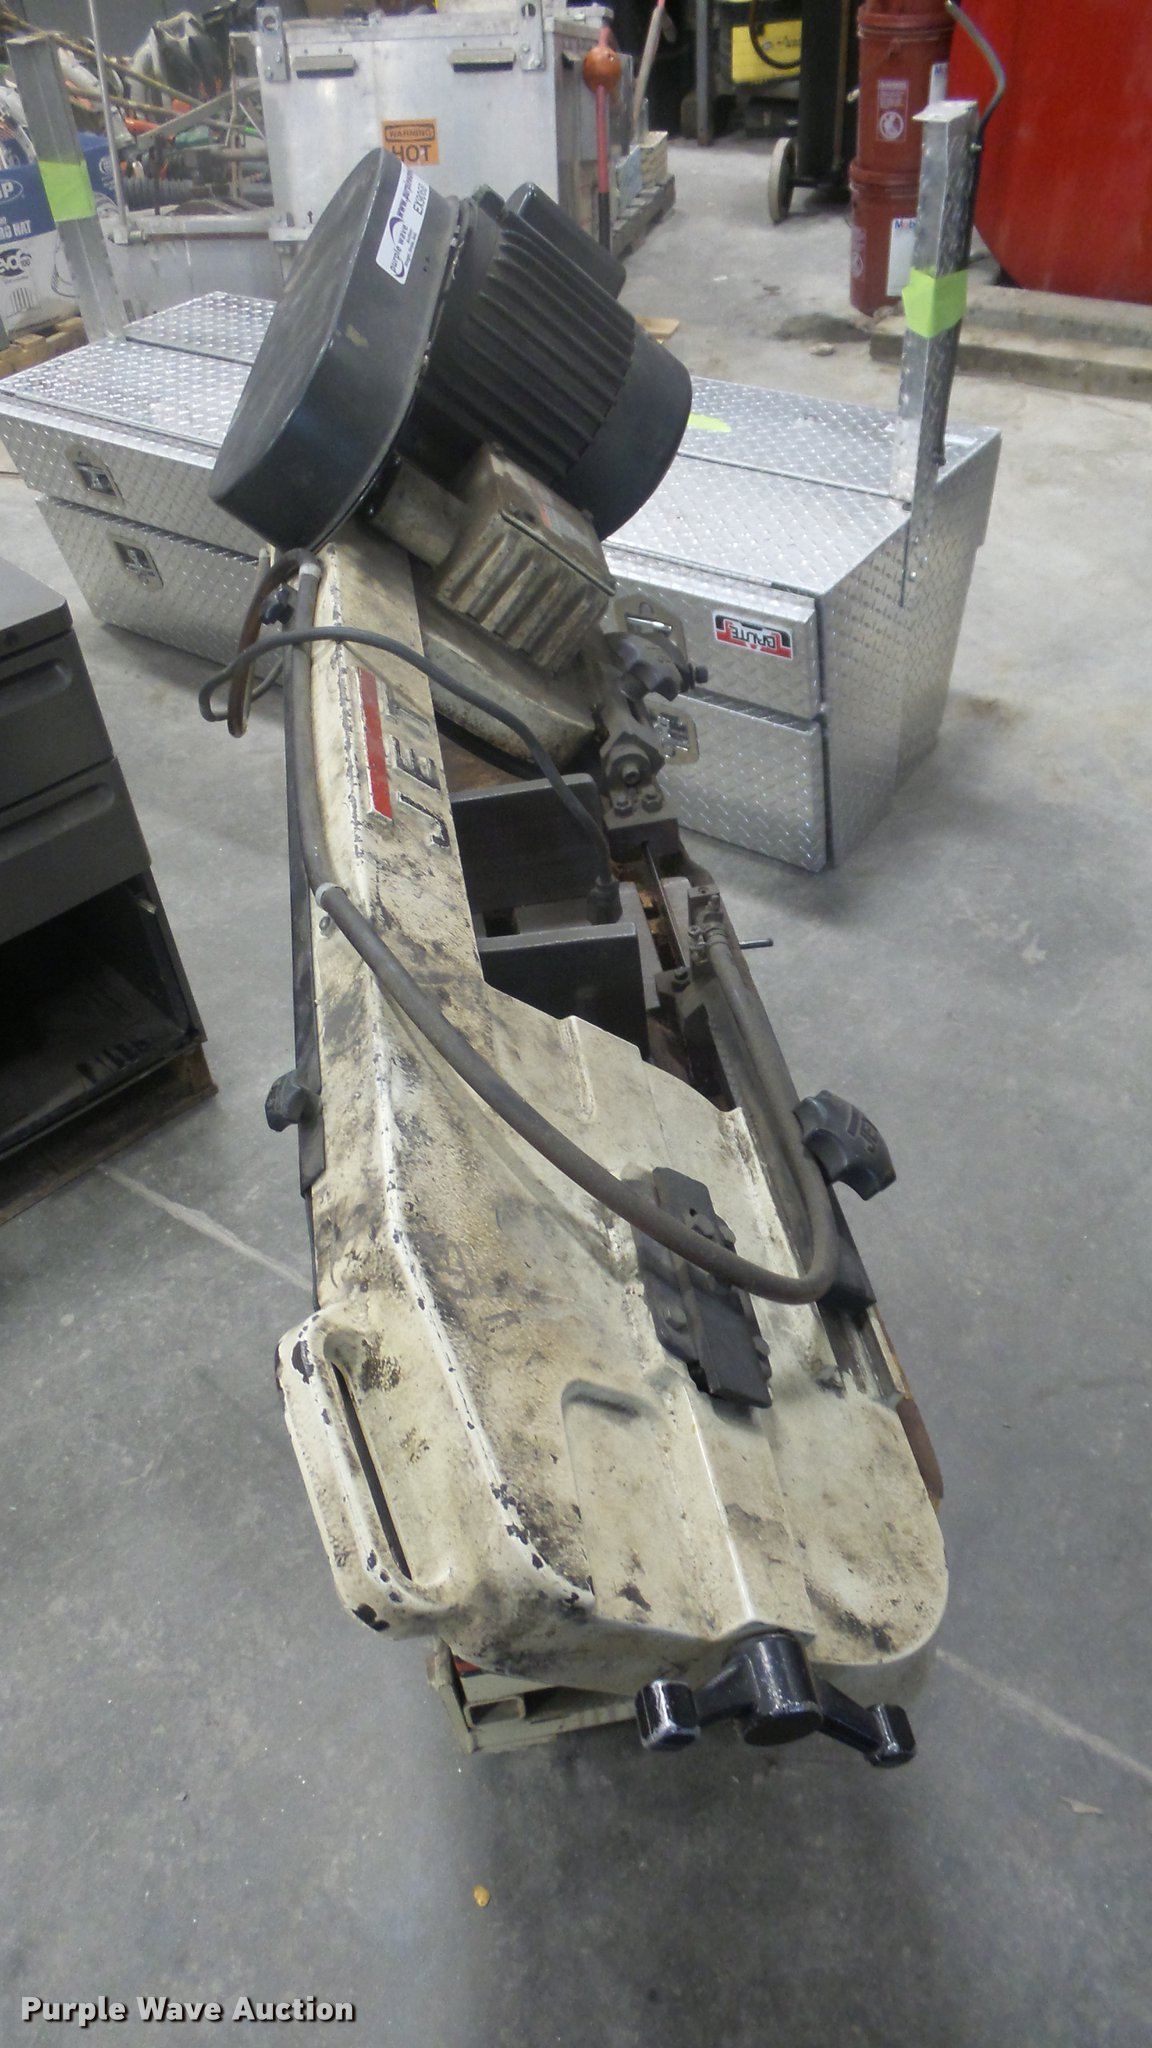 Jet Band Saw Item Ex9068 Sold May 8 City Of Wichita Auc